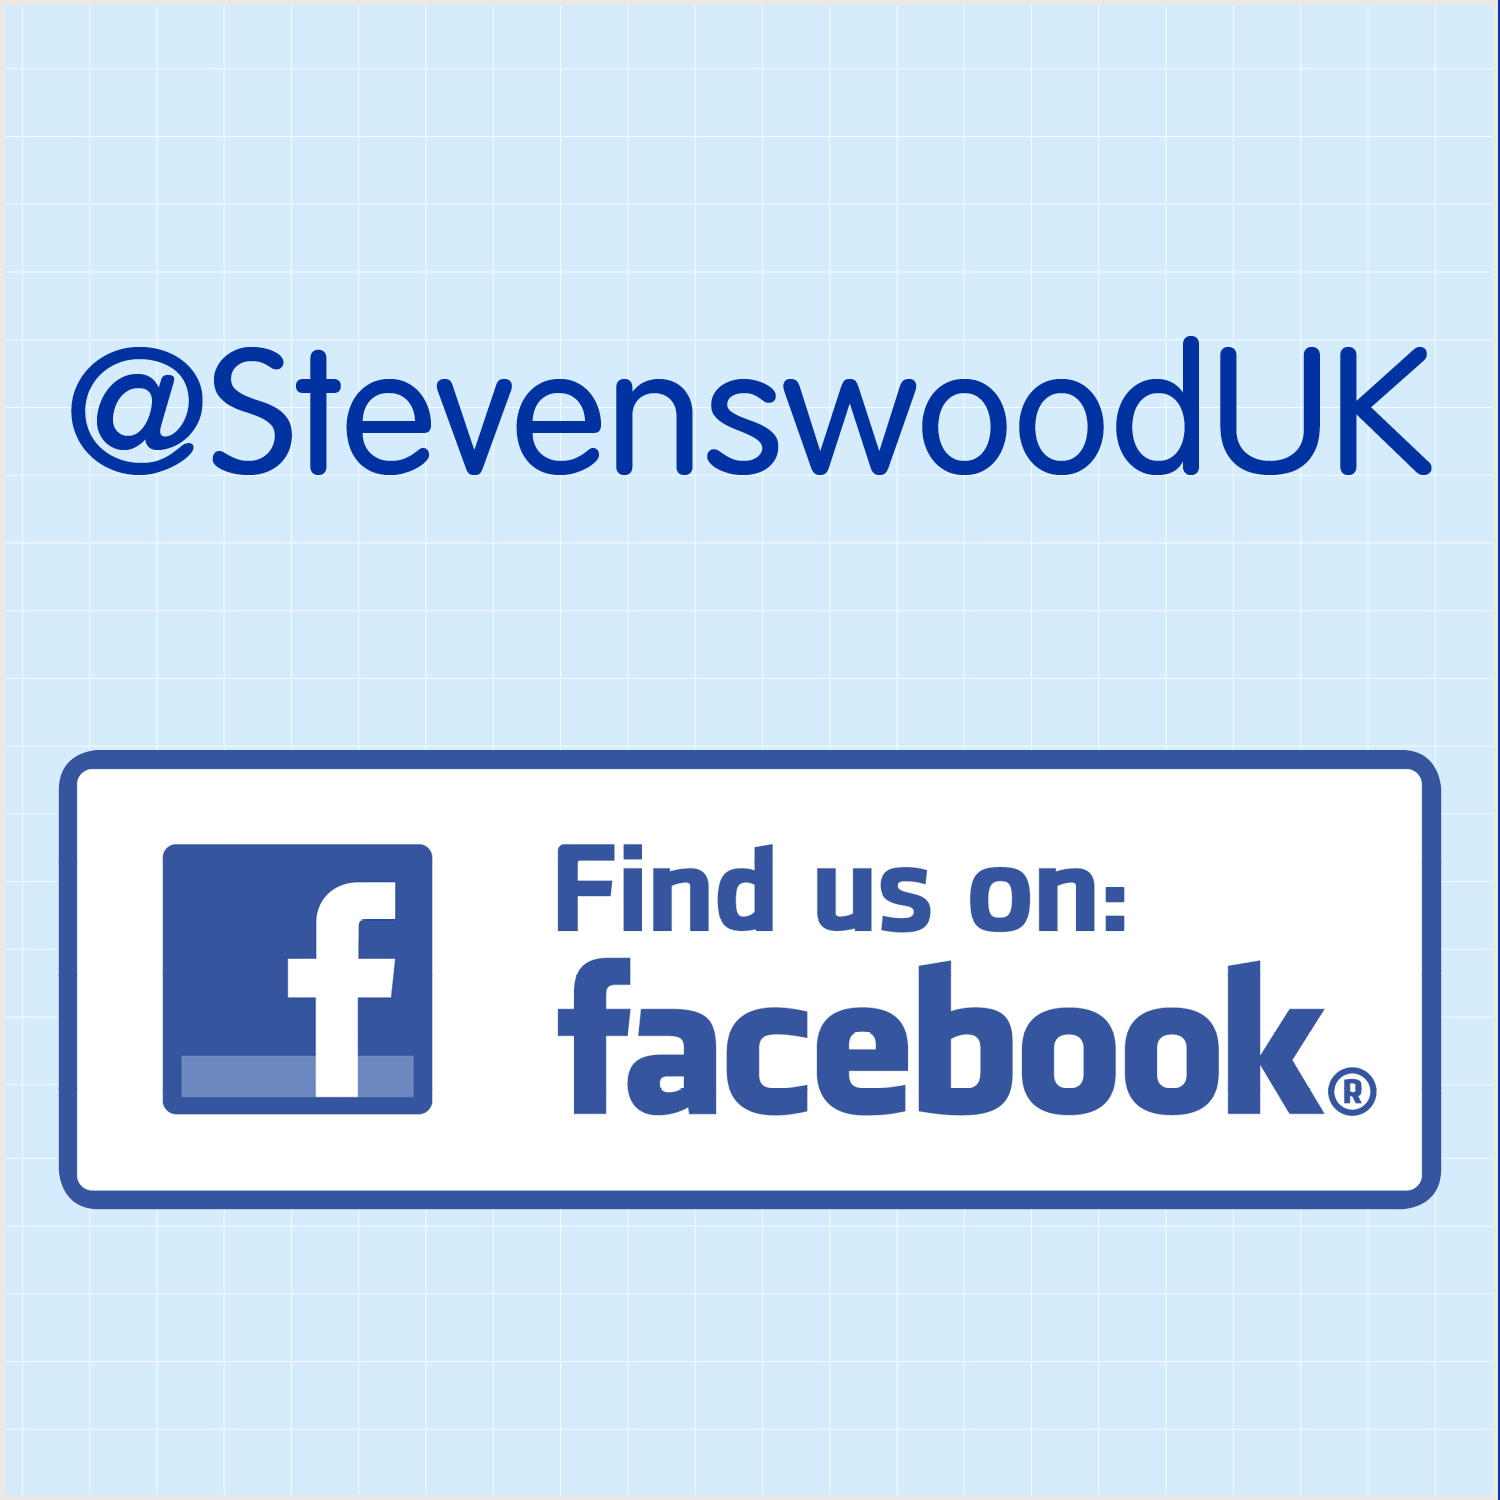 Stevenswood Are A Dedicated Upvc And Aluminium Trade Supplier